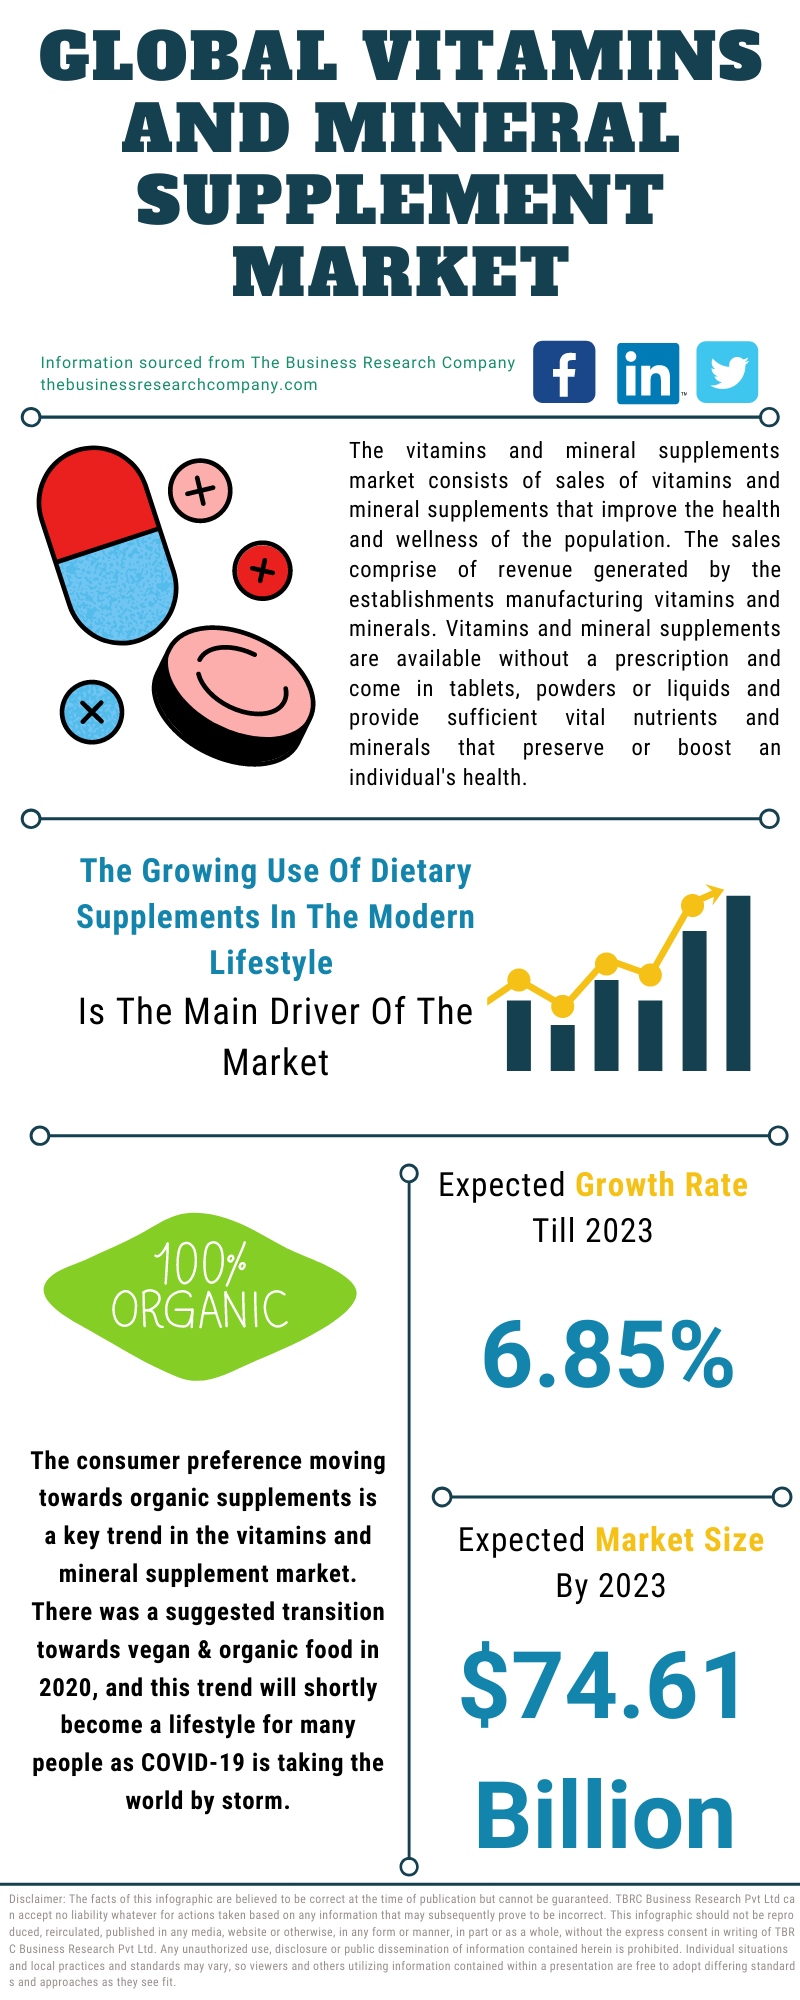 Vitamins and Mineral Supplement Market